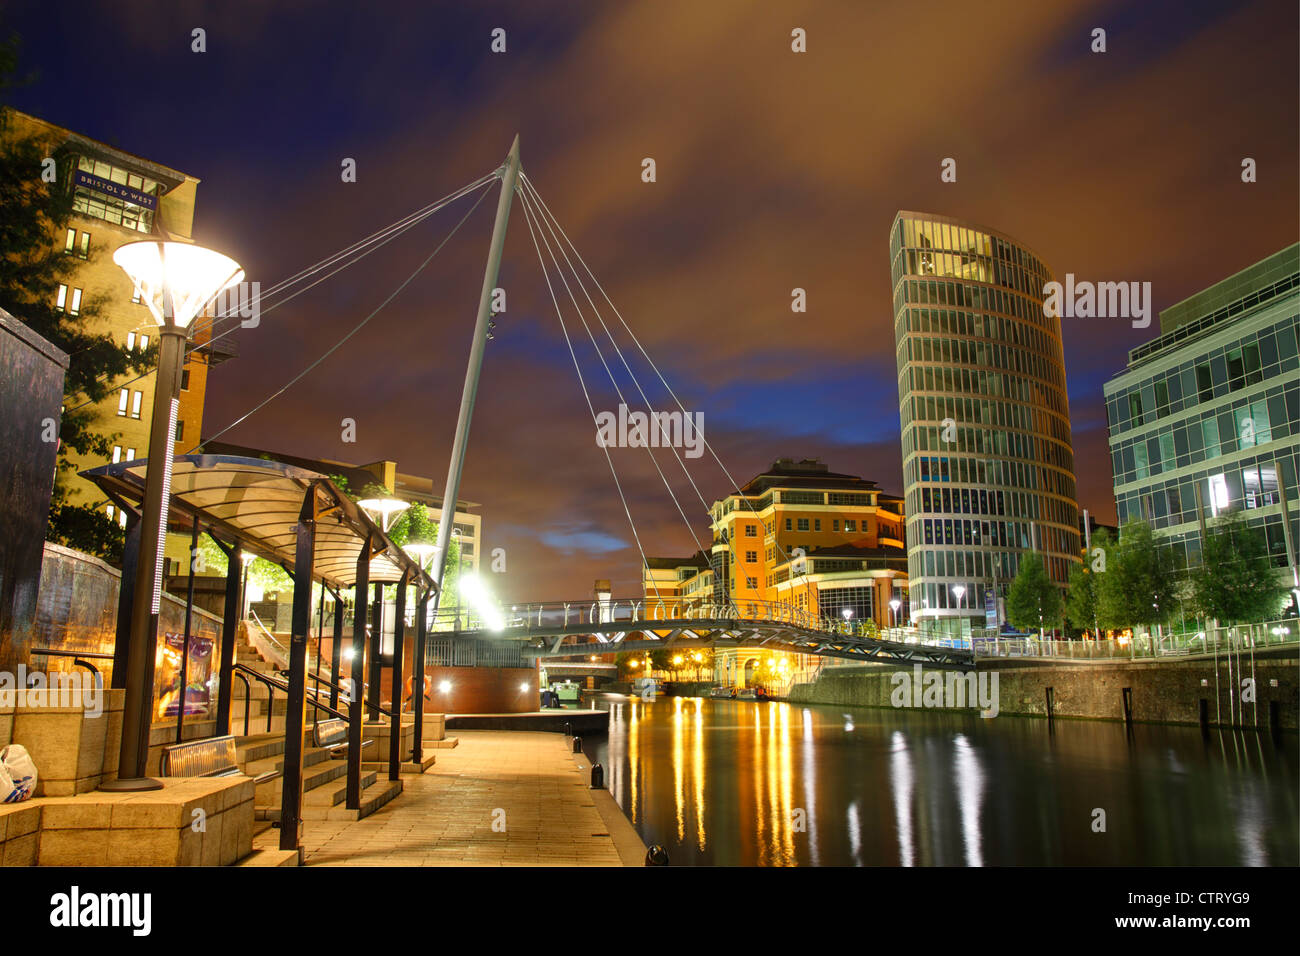 The Eye, Temple Quay at dusk. Bristol, July 2012. - Stock Image